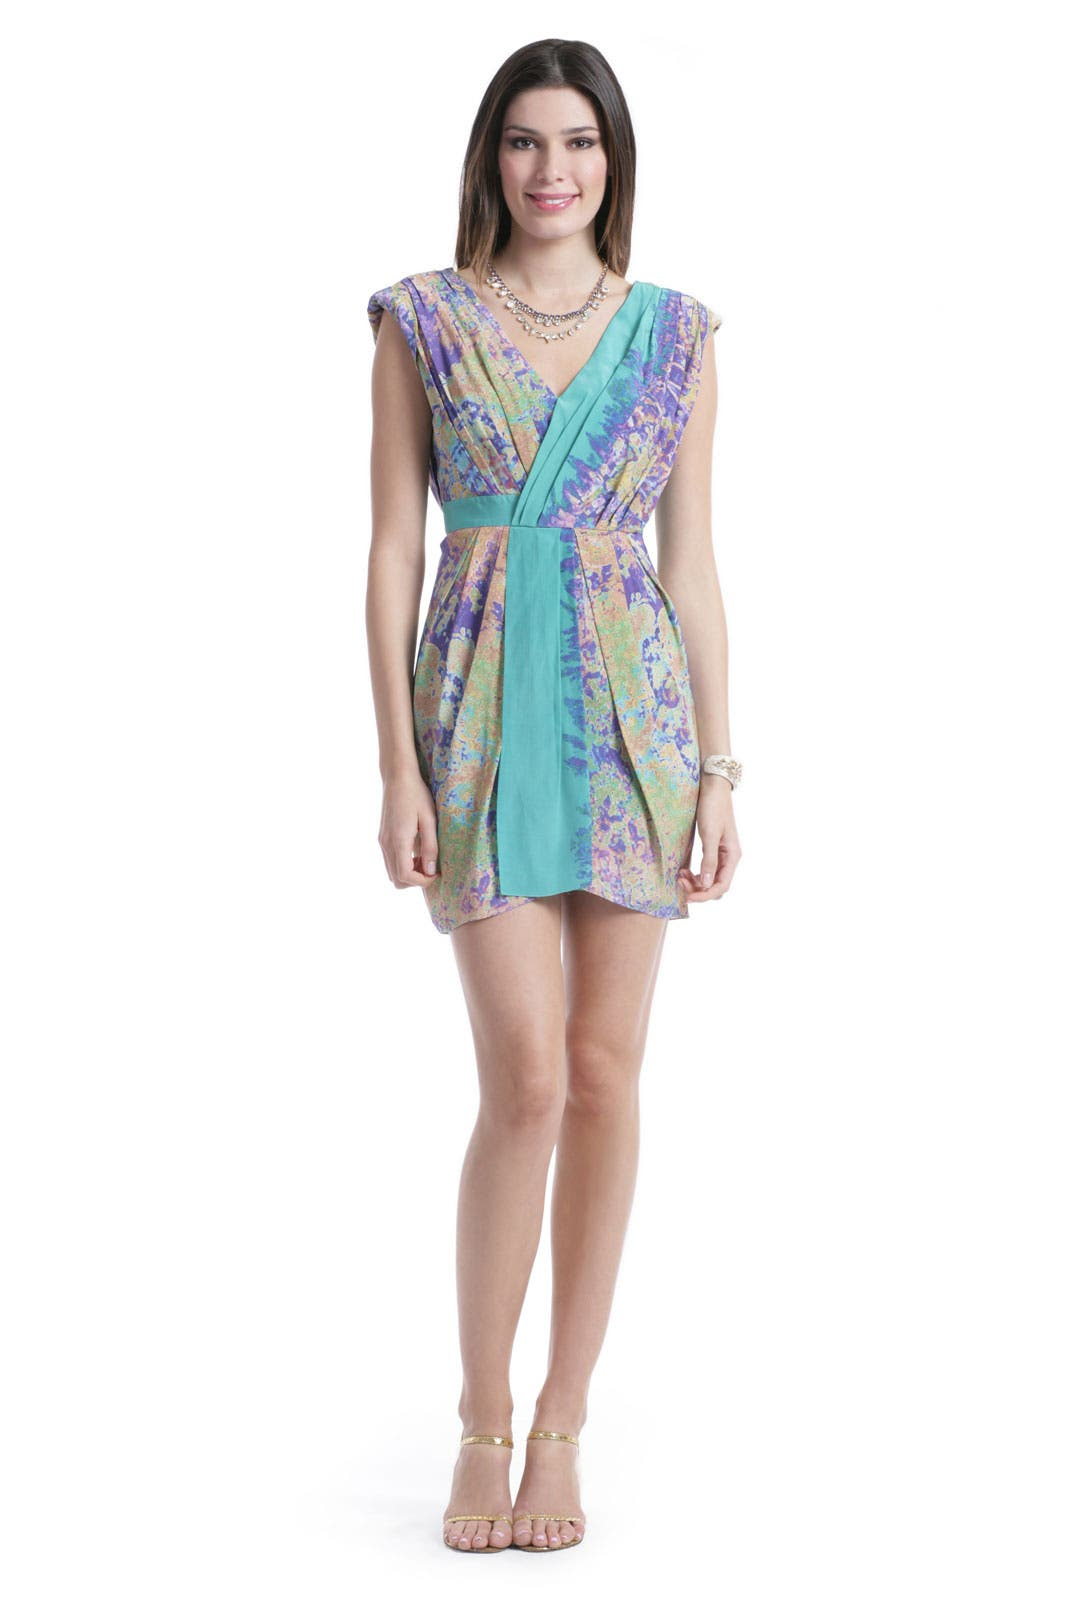 Aruba Splash Dress by Tibi